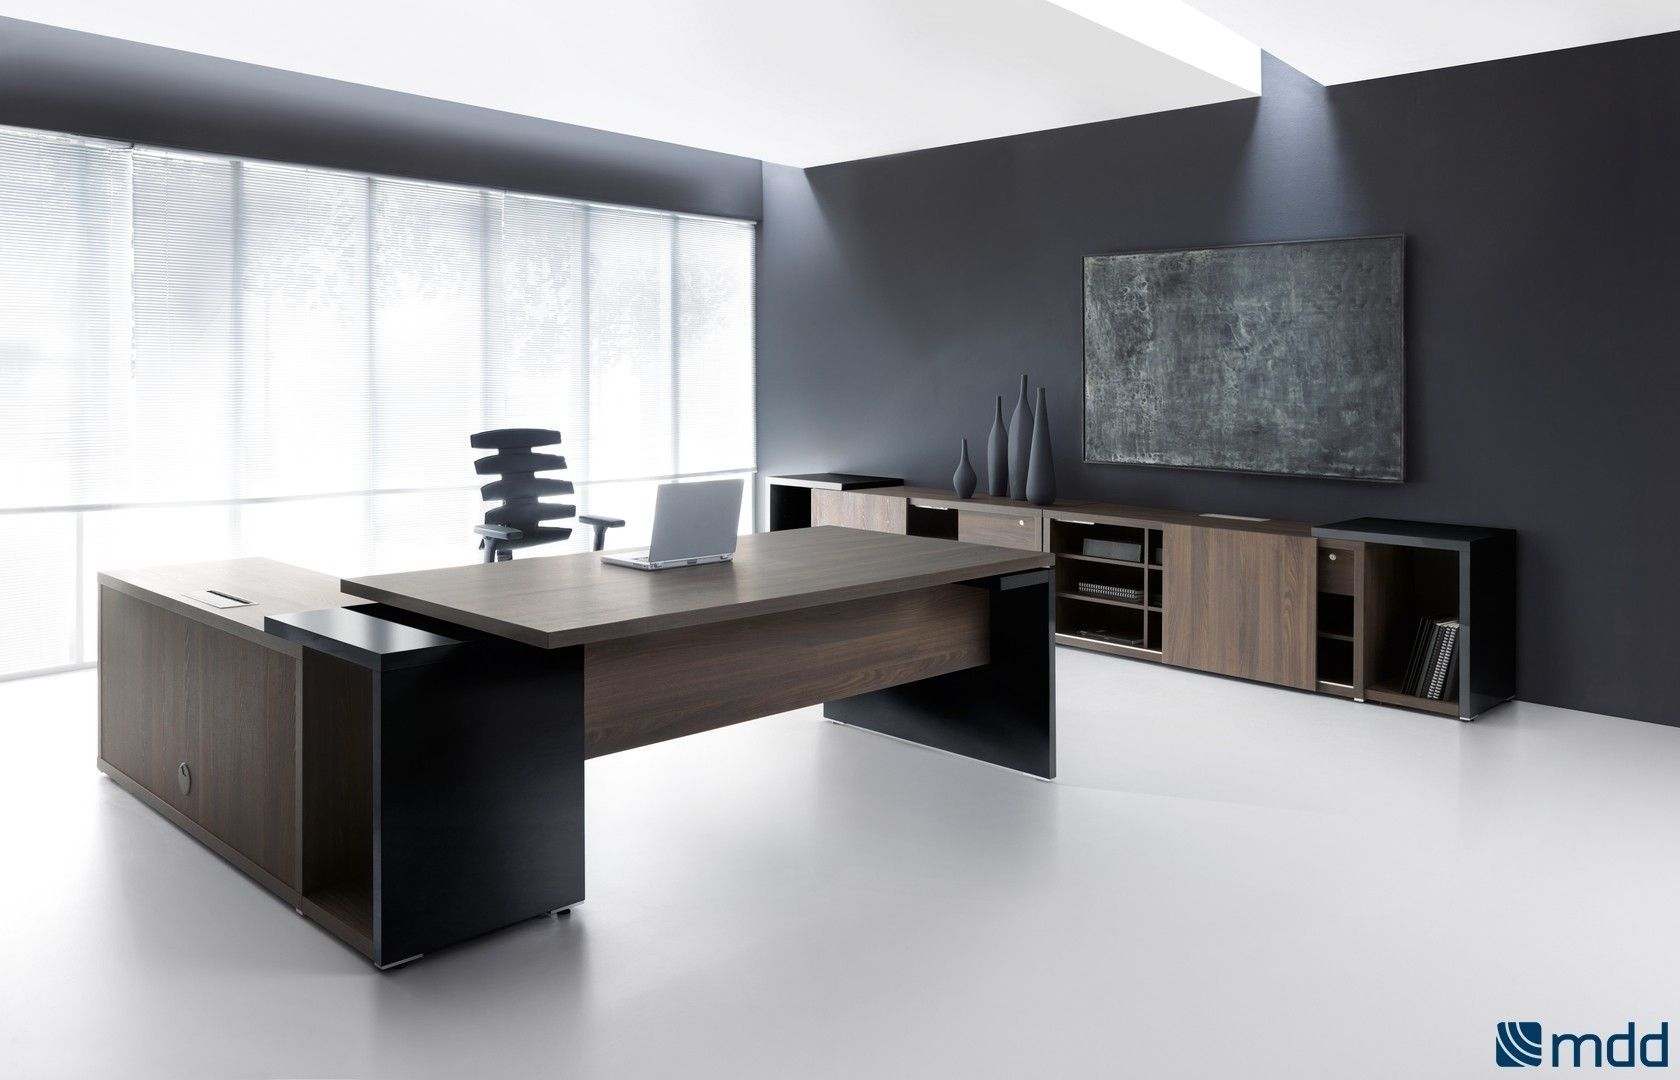 Top 10 Stunning Home Office Layout Homeofficeideas Homeofficewalmart Homeoffic Office Furniture Modern Modern Office Furniture Design Office Furniture Design